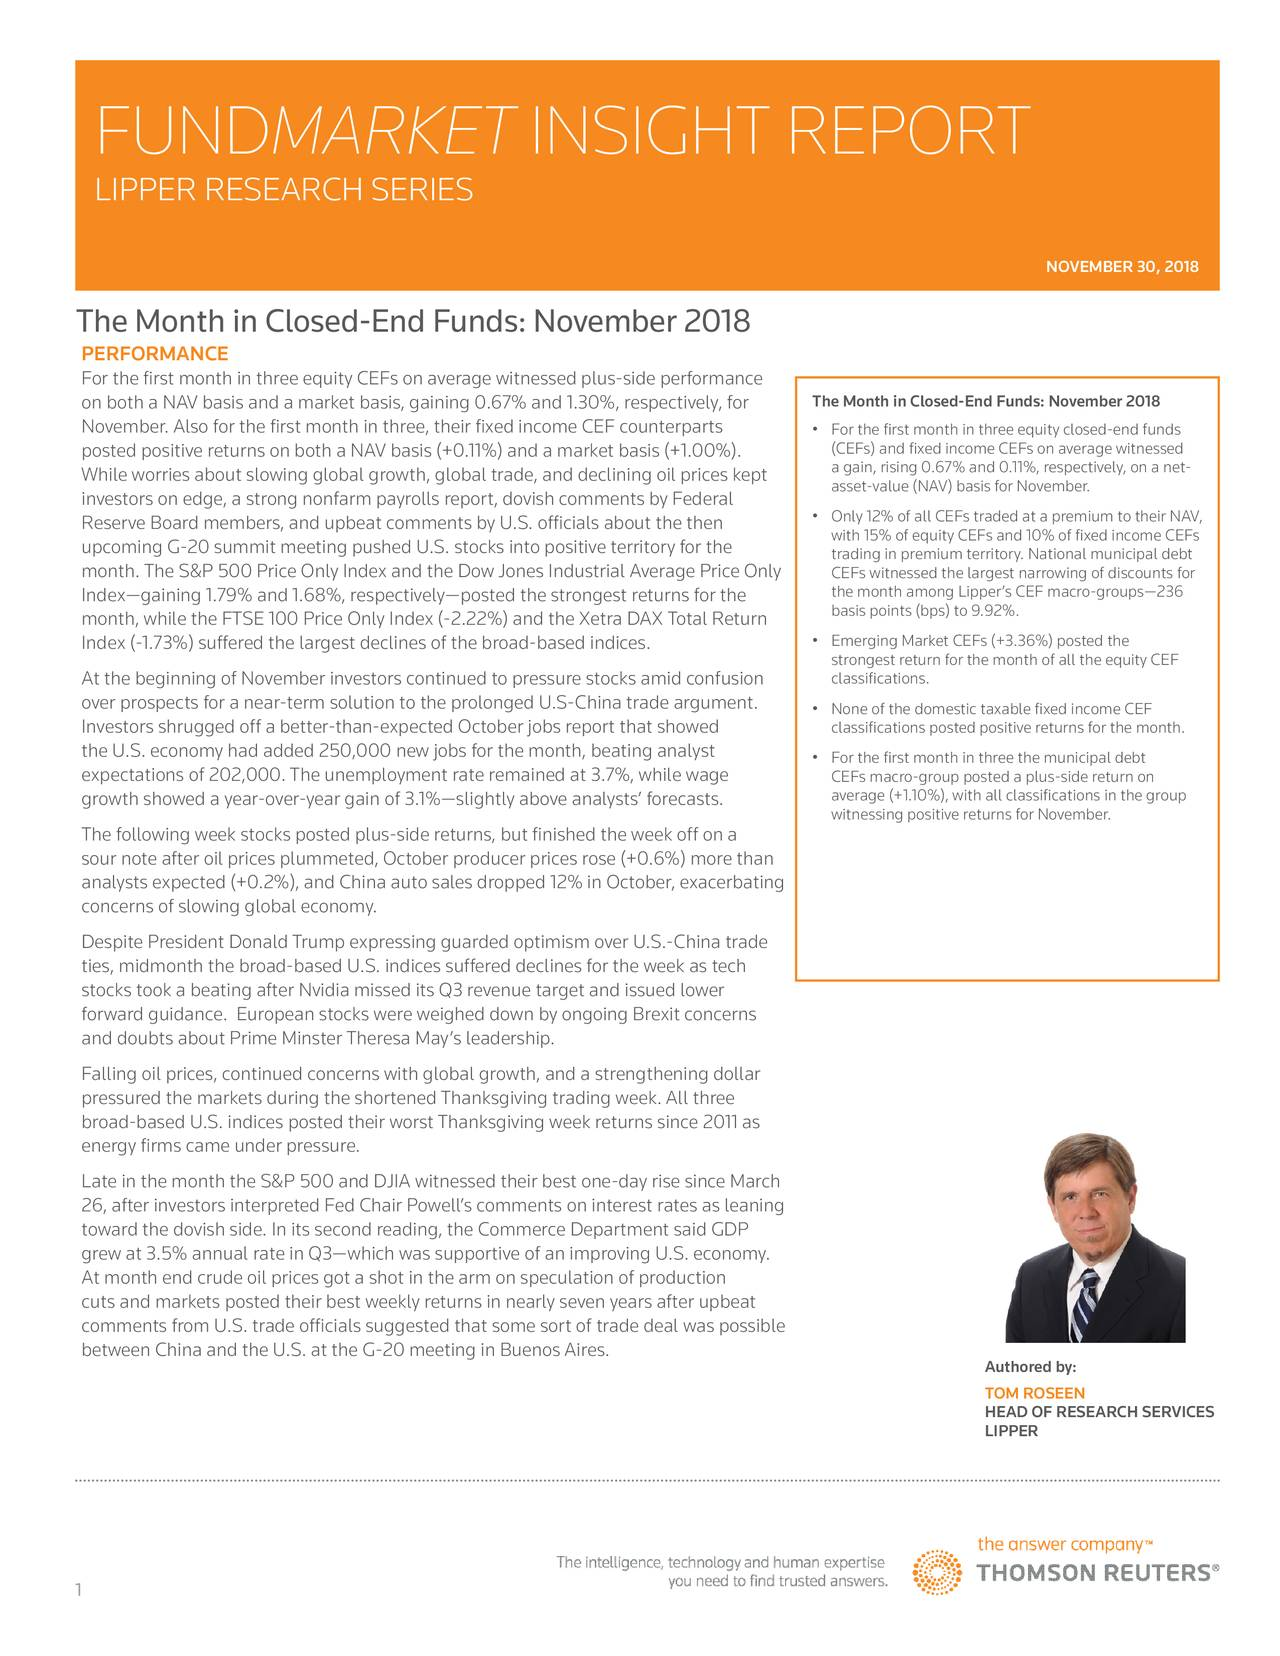 LIPPER RESEARCH SERIES NOVEMBER 30, 2018 The Month in Closed-End Funds: November 2018 PERFORMANCE For the first month in three equity CEFs on average witnessed plus-side performance on both a NAV basis and a market basis, gaining 0.67% and 1.30%, respectively, for The Month in Closed-End Funds: November 2018 November. Also for the first month in three, their fixed income CEF counterparts • For the first month in three equity closed-end funds posted positive returns on both a NAV basis (+0.11%) and a market basis (+1.00%). (CEFs) and fixed income CEFs on average witnessed While worries about slowing global growth, global trade, and declining oil prices kept a gain, rising 0.67% and 0.11%, respectively, on a net- investors on edge, a strong nonfarm payrolls report, dovish comments by Federal asset-value (NAV) basis for November. Reserve Board members, and upbeat comments by U.S. officials about the then • Only 12% of all CEFs traded at a premium to their NAV, with 15% of equity CEFs and 10% of fixed income CEFs upcoming G-20 summit meeting pushed U.S. stocks into positive territory for the trading in premium territory. National municipal debt month. The S&P 500 Price Only Index and the Dow Jones Industrial Average Price Only CEFs witnessed the largest narrowing of discounts for Index—gaining 1.79% and 1.68%, respectively—posted the strongest returns for the the month among Lipper's CEF macro-groups—236 month, while the FTSE 100 Price Only Index (-2.22%) and the Xetra DAX Total Return basis points (bps) to 9.92%. Index (-1.73%) suffered the largest declines of the broad-based indices. • Emerging Market CEFs (+3.36%) posted the classifications. for the month of all the equity CEF At the beginning of November investors continued to pressure stocks amid confusion over prospects for a near-term solution to the prolonged U.S-China trade argument. • None of the domestic taxable fixed income CEF Investors shrugged off a better-than-expected October jobs report that showed classifications posted positive returns for the month. the U.S. economy had added 250,000 new jobs for the month, beating analyst • For the first month in three the municipal debt expectations of 202,000. The unemployment rate remained at 3.7%, while wage CEFs macro-group posted a plus-side return on growth showed a year-over-year gain of 3.1%—slightly above analysts' forecasts. average (+1.10%), with all classifications in the group witnessing positive returns for November. The following week stocks posted plus-side returns, but finished the week off on a sour note after oil prices plummeted, October producer prices rose (+0.6%) more than analysts expected (+0.2%), and China auto sales dropped 12% in October, exacerbating concerns of slowing global economy. Despite President Donald Trump expressing guarded optimism over U.S.-China trade ties, midmonth the broad-based U.S. indices suffered declines for the week as tech stocks took a beating after Nvidia missed its Q3 revenue target and issued lower forward guidance. European stocks were weighed down by ongoing Brexit concerns and doubts about Prime Minster Theresa May's leadership. Falling oil prices, continued concerns with global growth, and a strengthening dollar pressured the markets during the shortened Thanksgiving trading week. All three broad-based U.S. indices posted their worst Thanksgiving week returns since 2011 as energy firms came under pressure. Late in the month the S&P 500 and DJIA witnessed their best one-day rise since March 26, after investors interpreted Fed Chair Powell's comments on interest rates as leaning toward the dovish side. In its second reading, the Commerce Department said GDP grew at 3.5% annual rate in Q3—which was supportive of an improving U.S. economy. At month end crude oil prices got a shot in the arm on speculation of production cuts and markets posted their best weekly returns in nearly seven years after upbeat comments from U.S. trade officials suggested that some sort of trade deal was possible between China and the U.S. at the G-20 meeting in Buenos Aires. Authored by: TOM ROSEEN HEAD OF RESEARCH SERVICES LIPPER 1